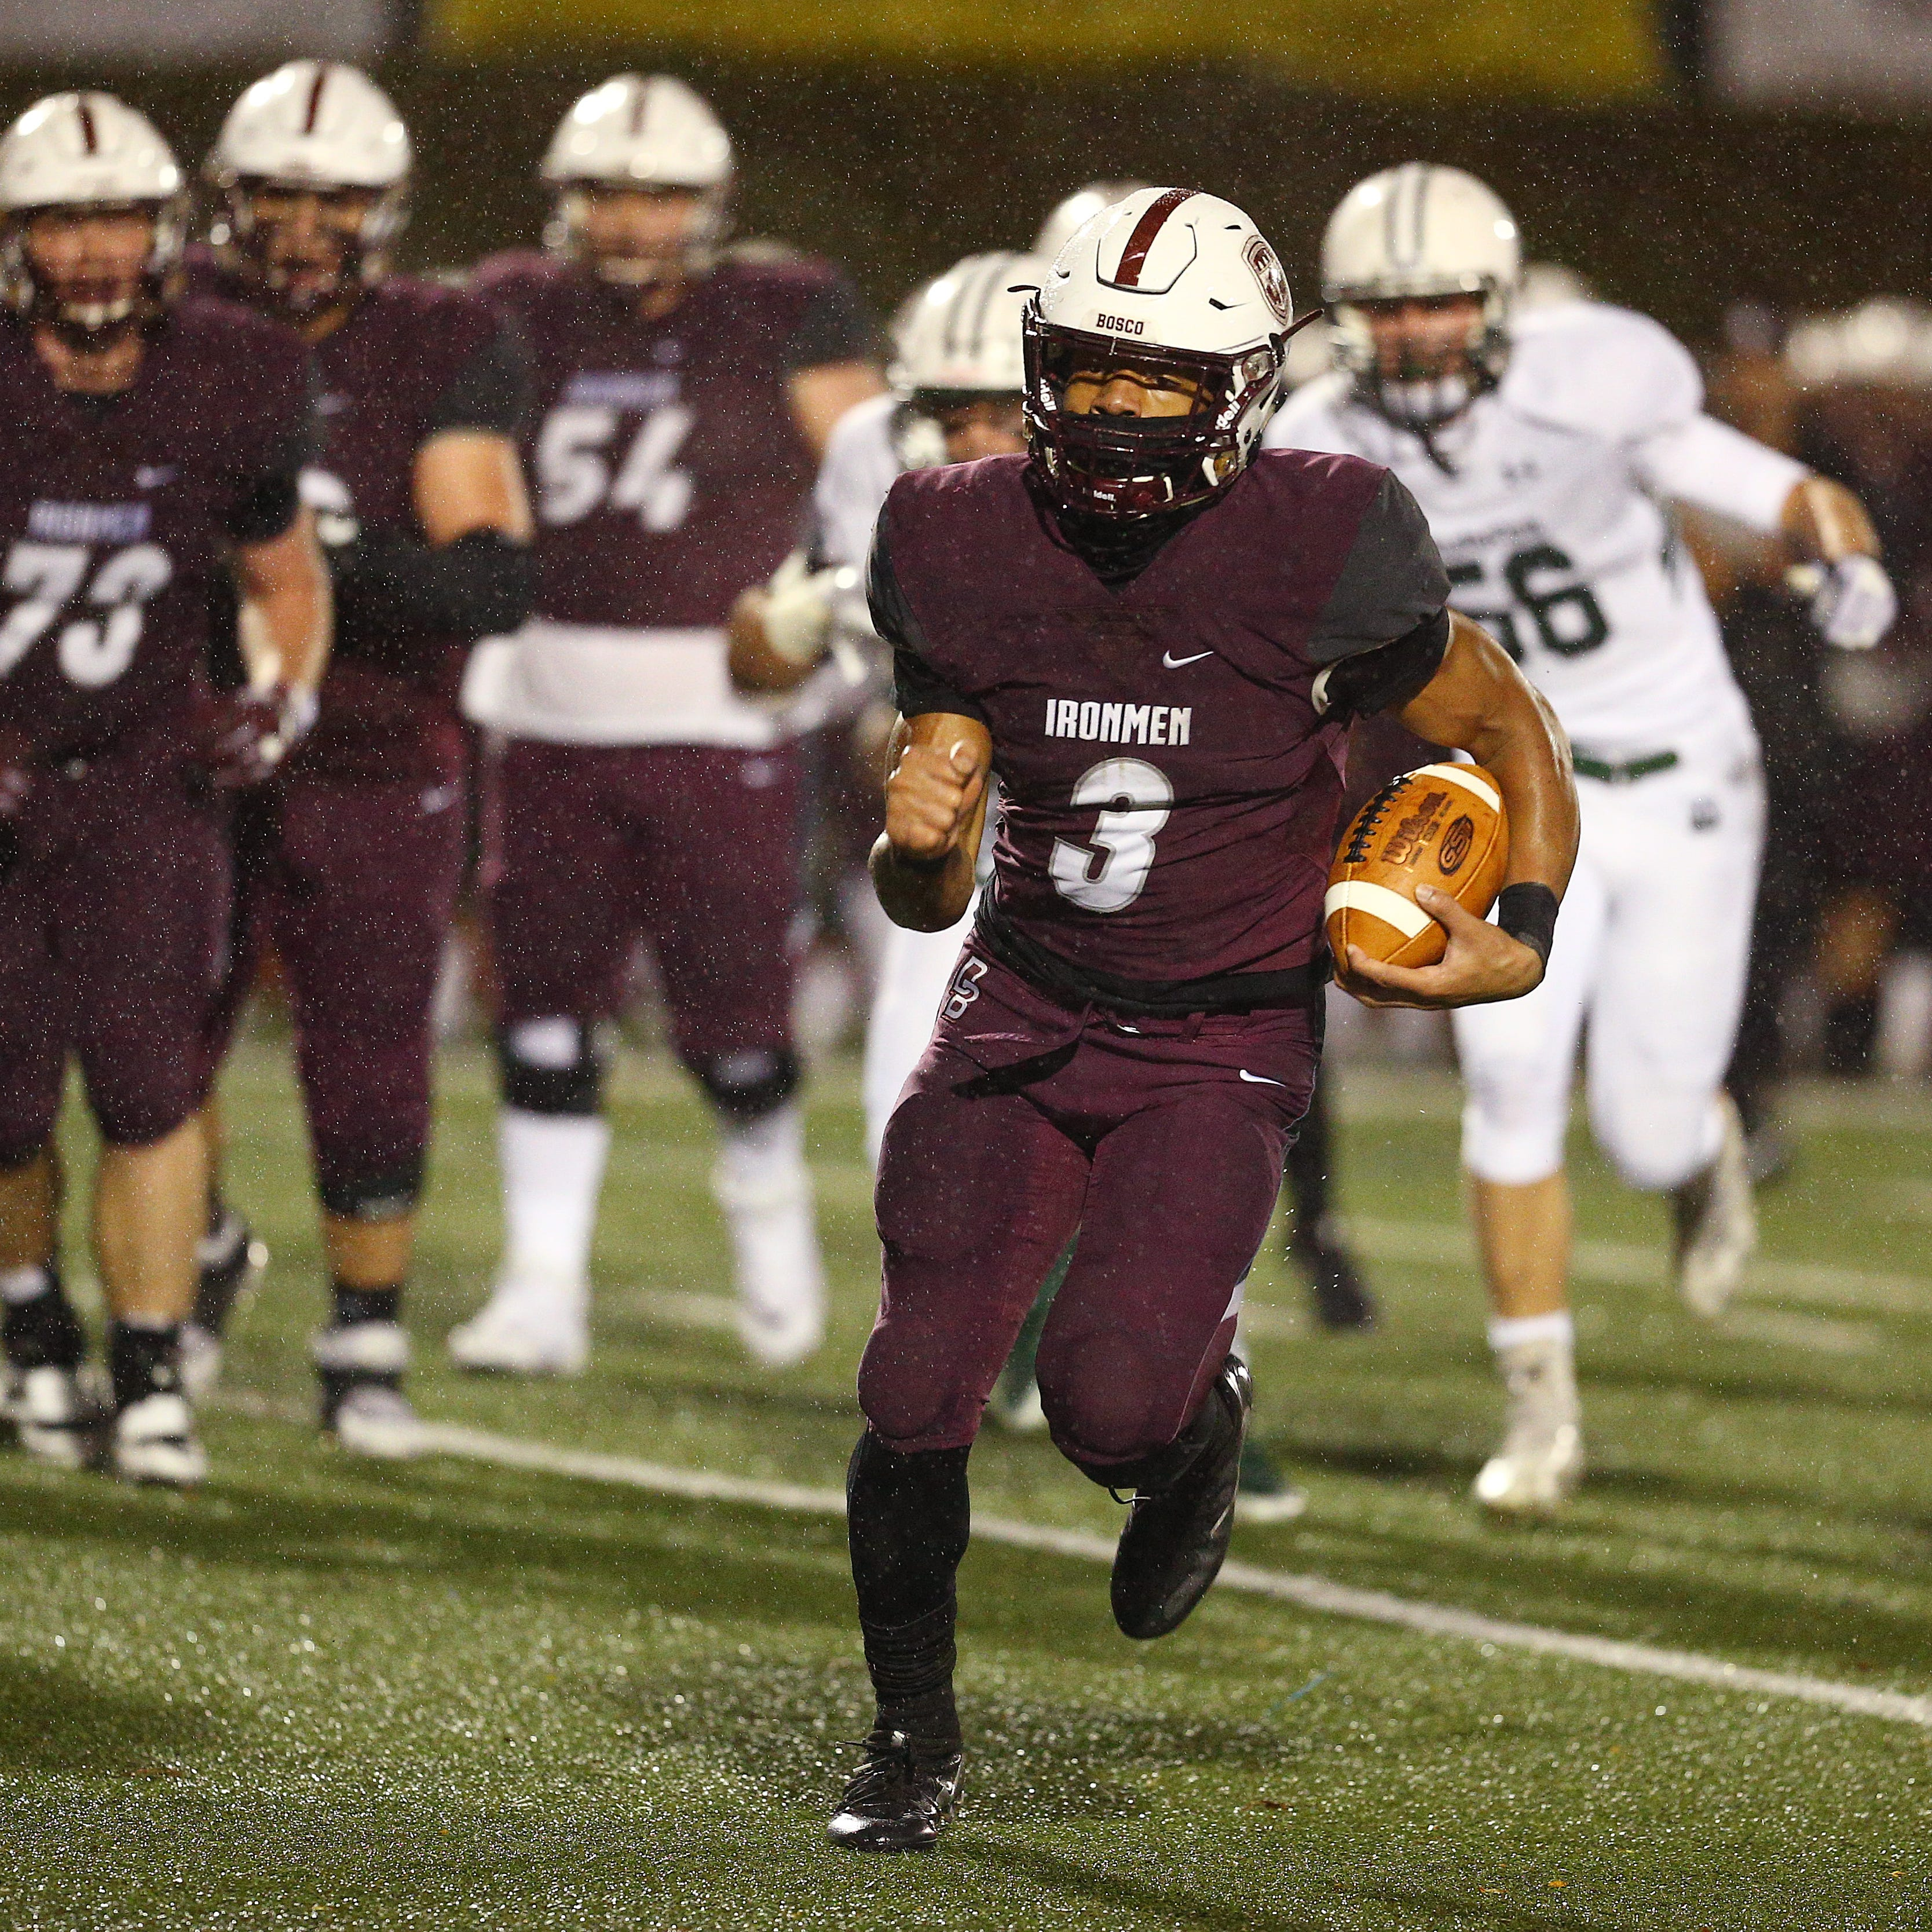 Vote for the North Jersey Football Player of the Week for the second week of playoffs